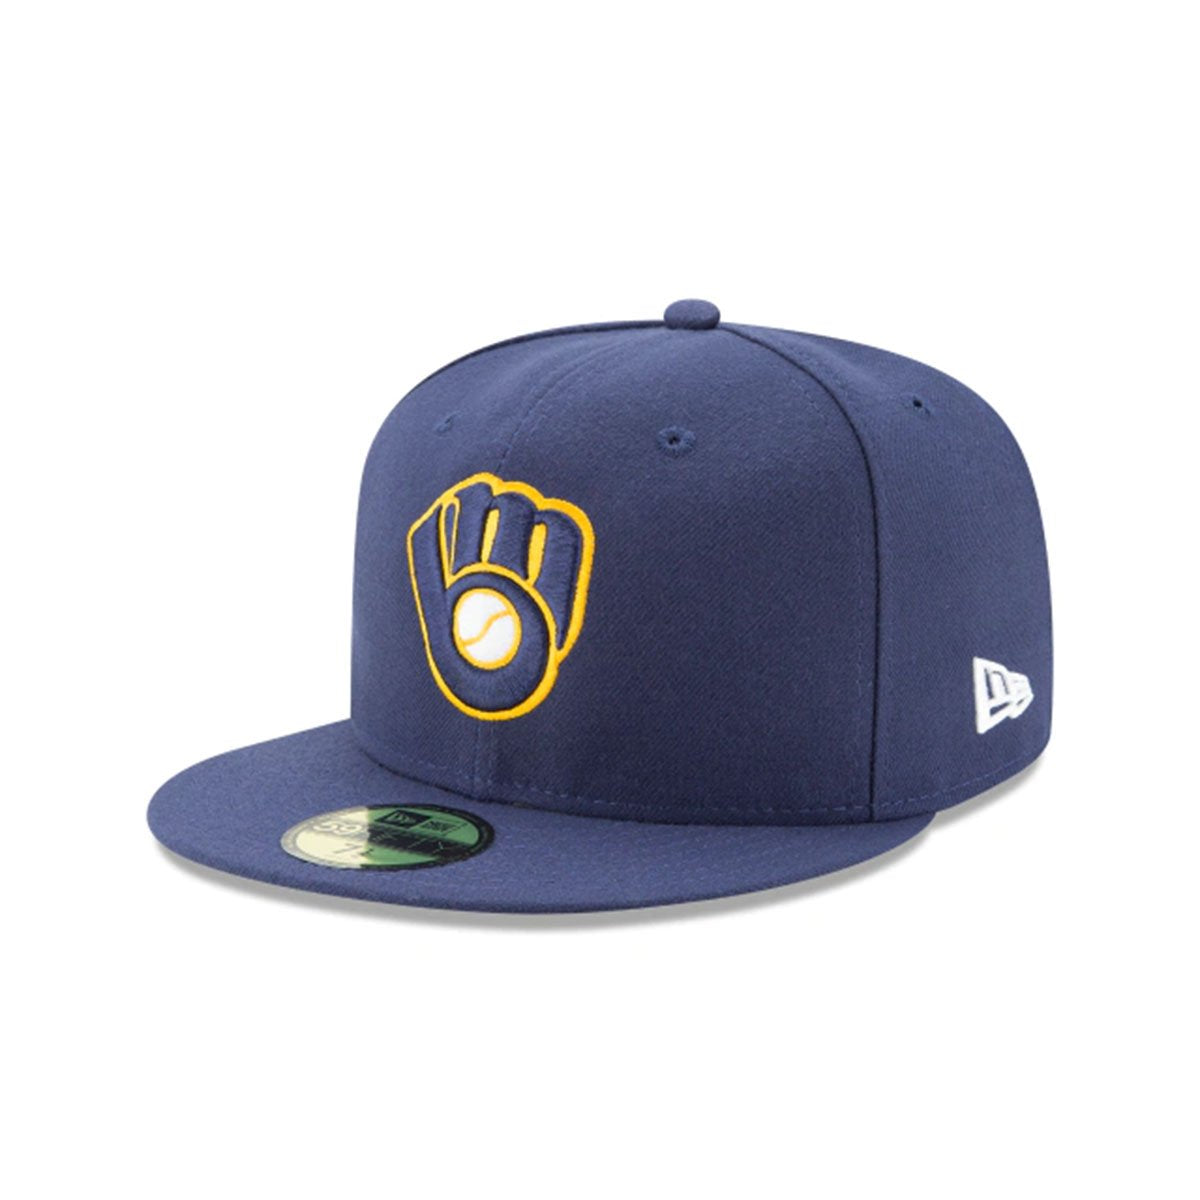 MILWAUKEE BREWERS 59FIFTY FITTED BLUE/YELLOW